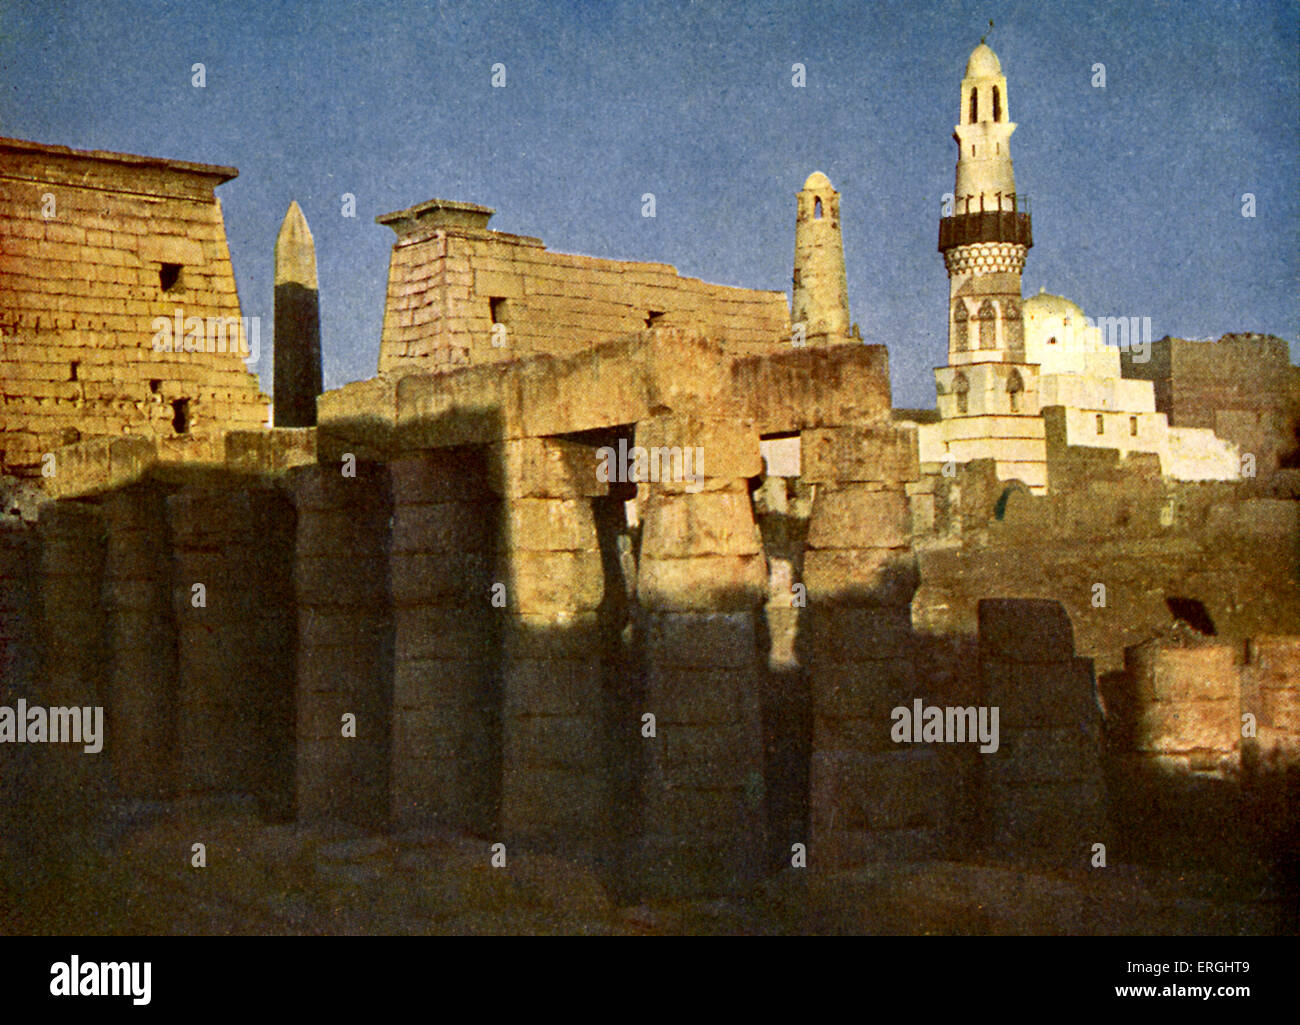 Temple of Luxor at eventide', Egypt.  Ancient Egyptian temple complex. Photograph in 1923 book. - Stock Image